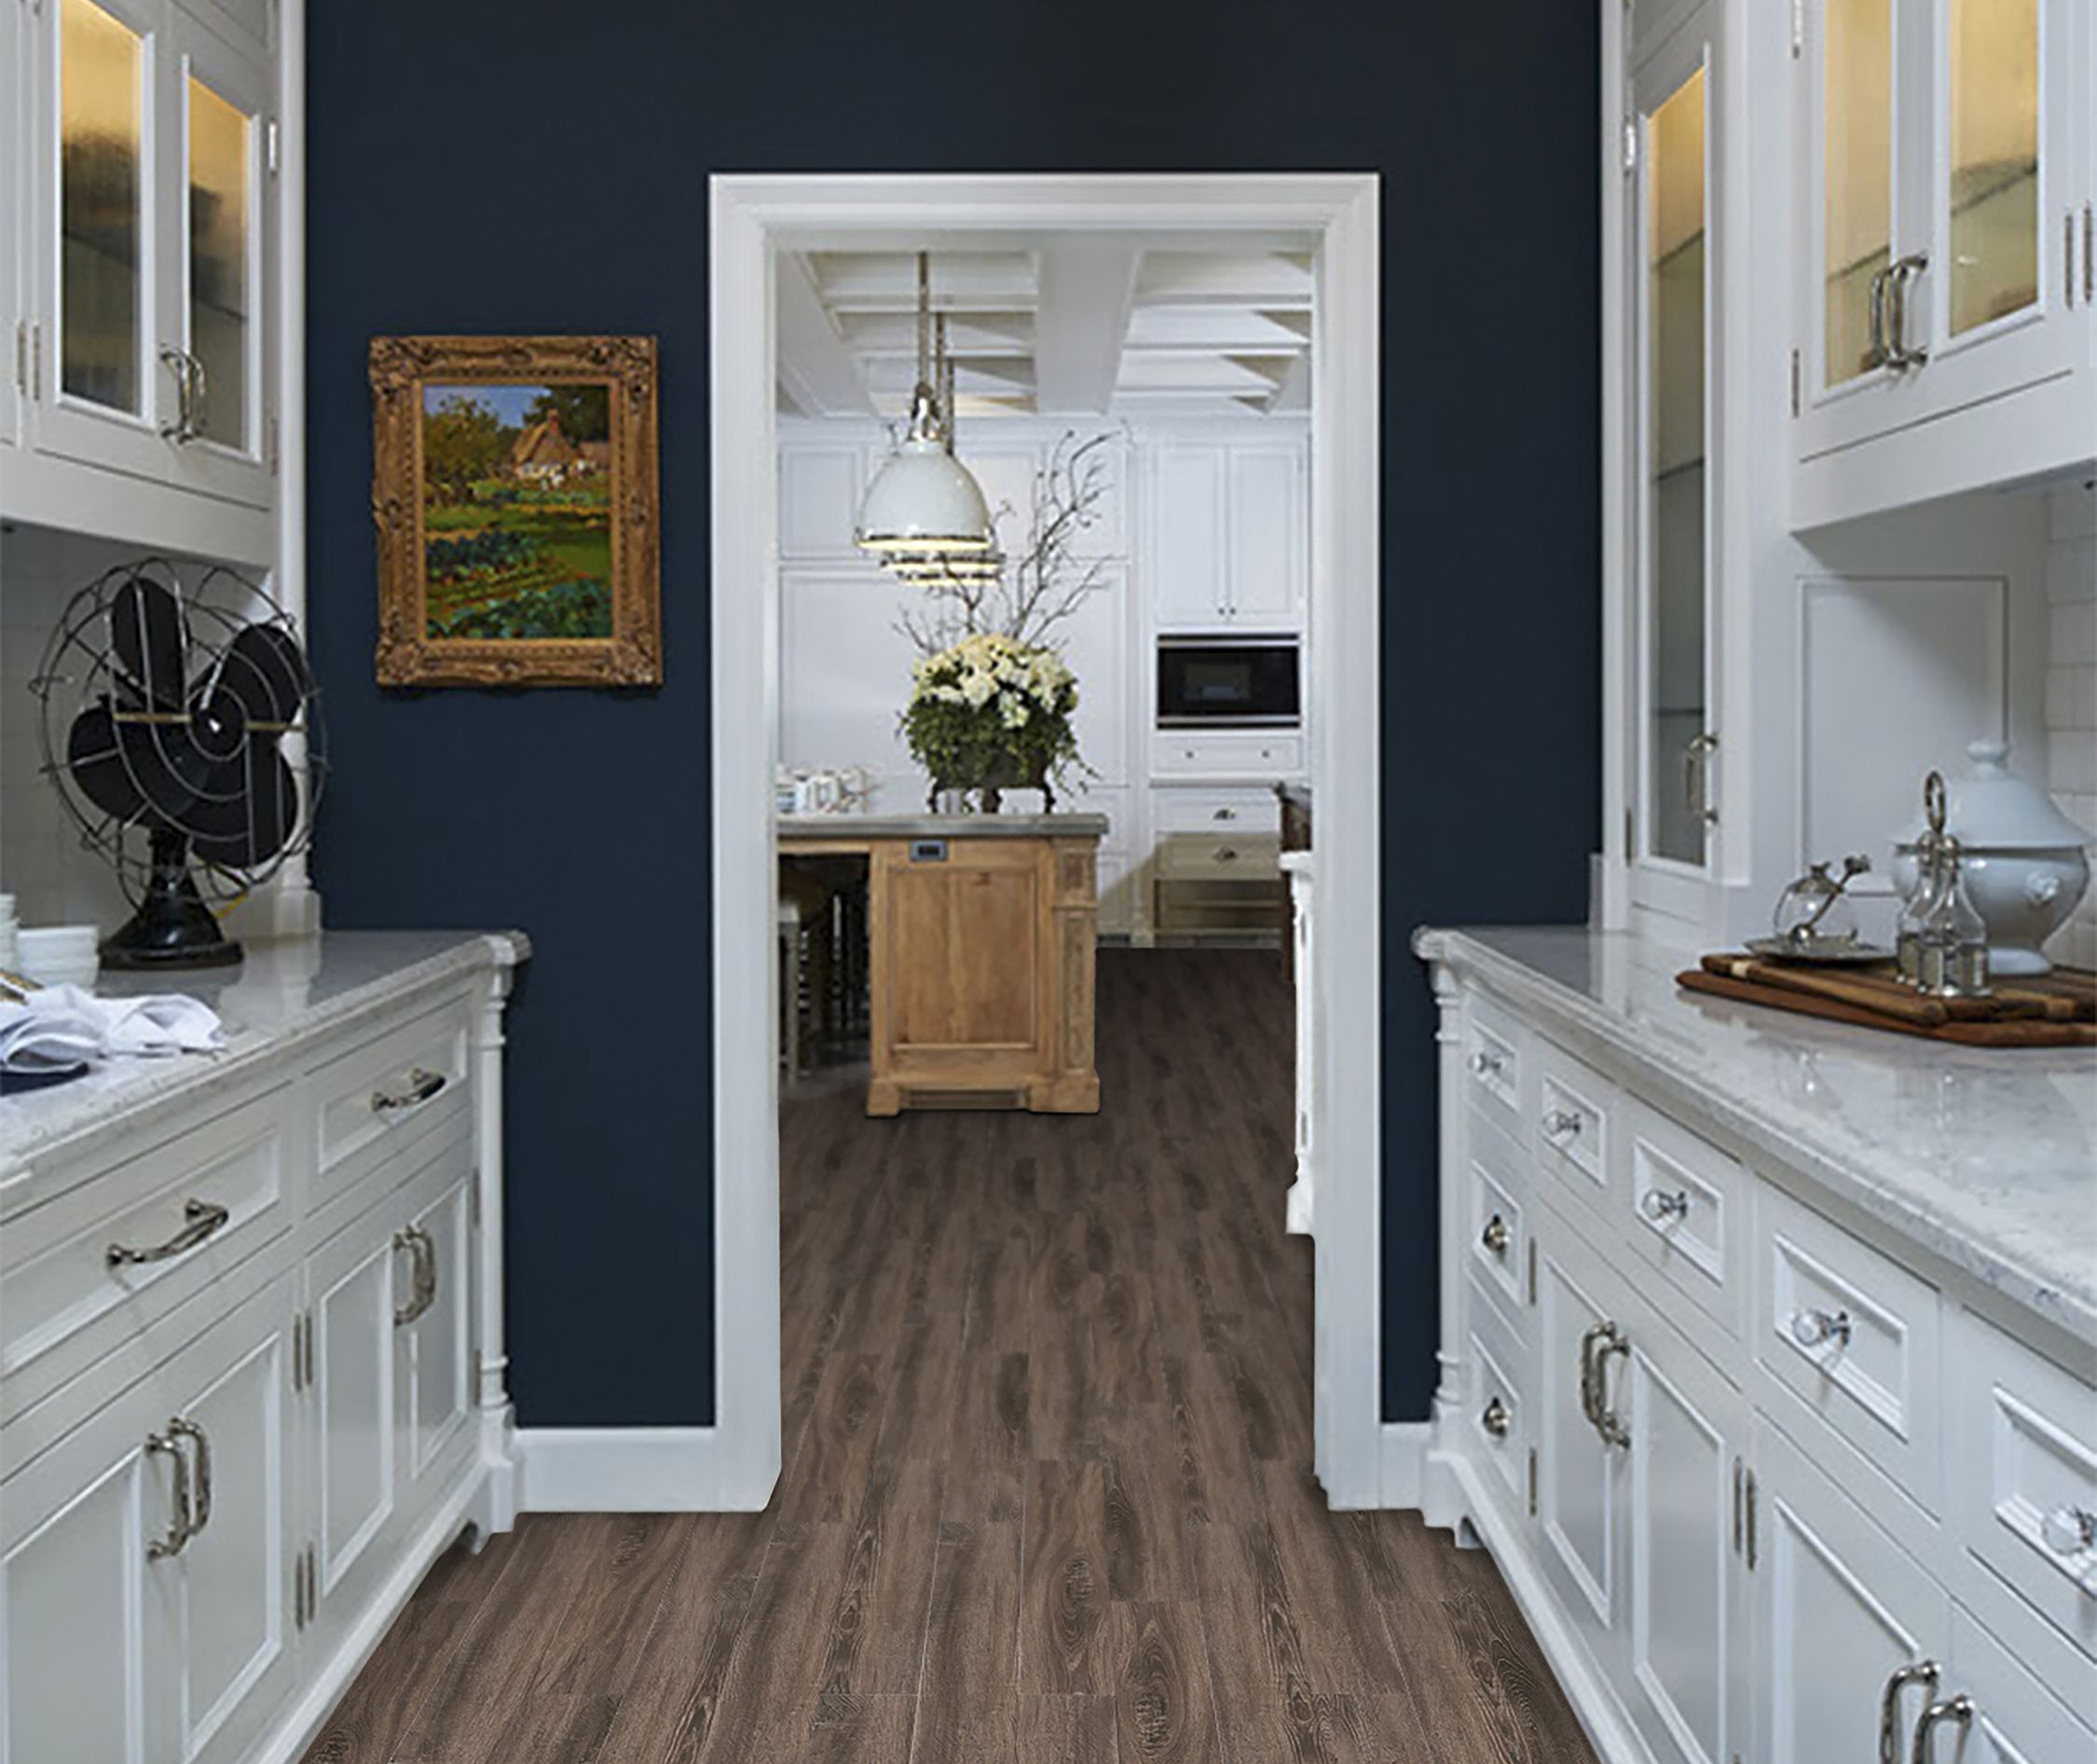 Madiera Oak Wood Look tile. Available at Lowe's. Wood